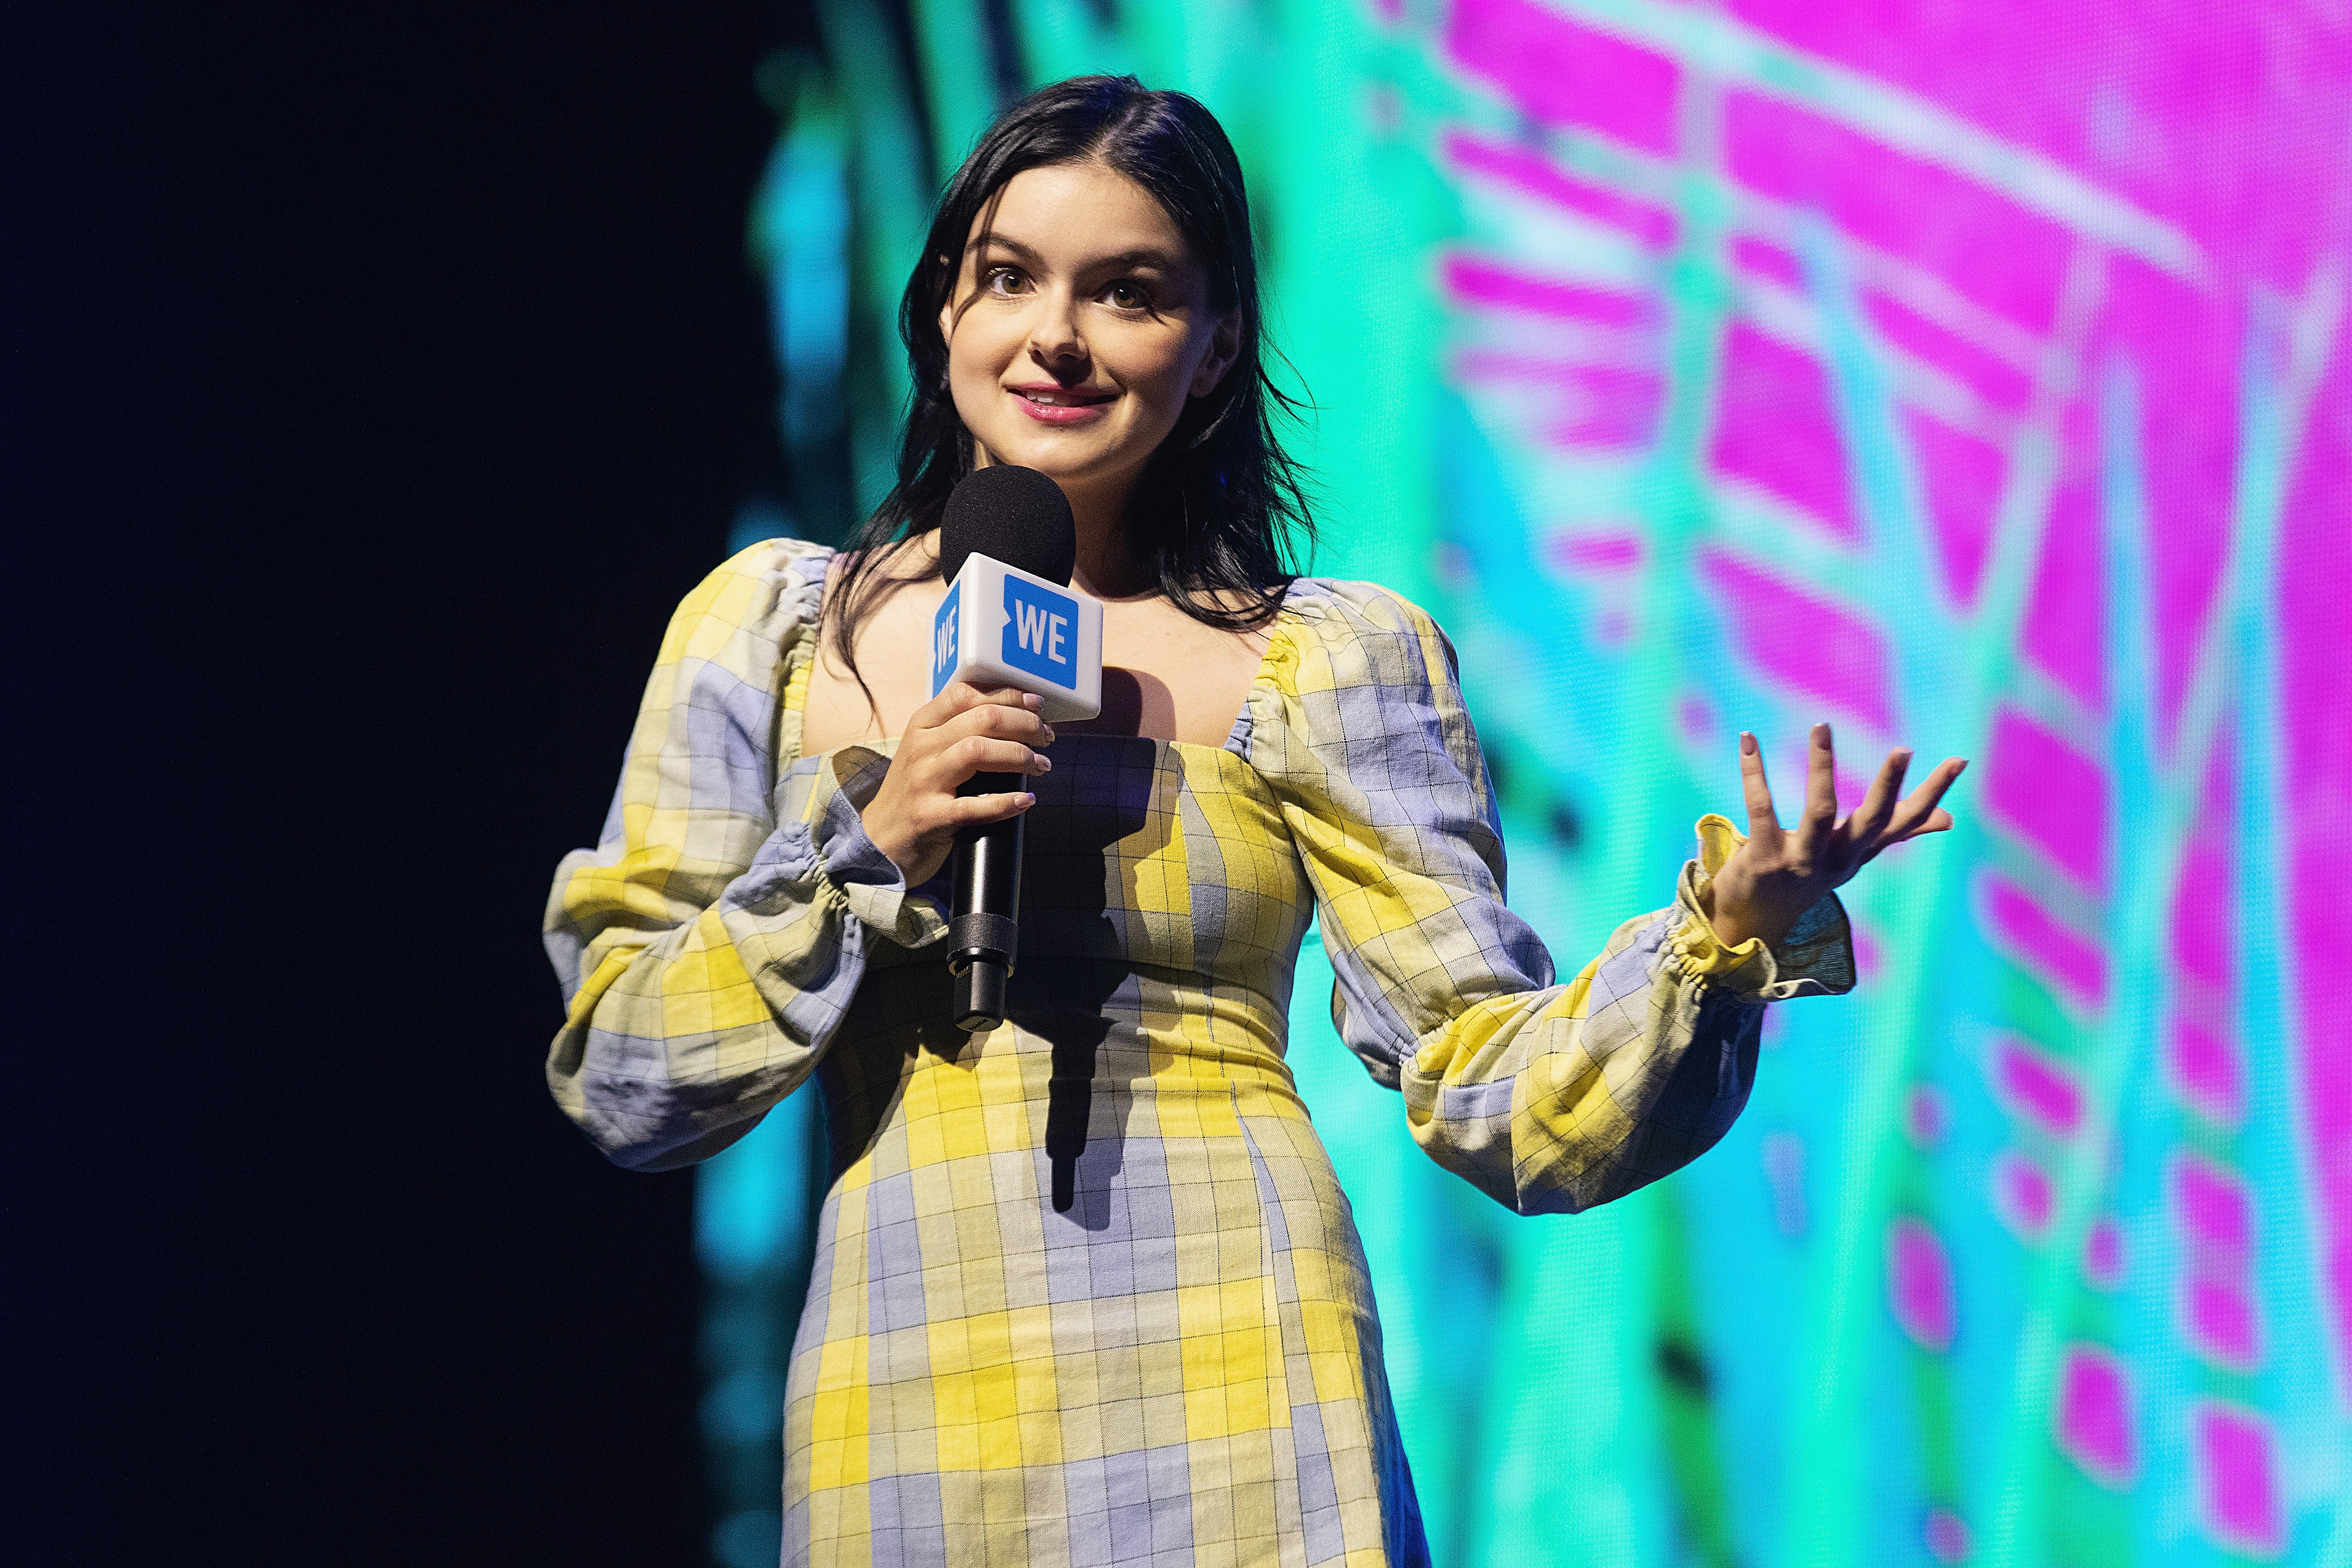 Actress Ariel Winter speaks on stage during WE Day at Tacoma Dome on April 18, 2019 in Tacoma, Washington. | Photo: GettyImages